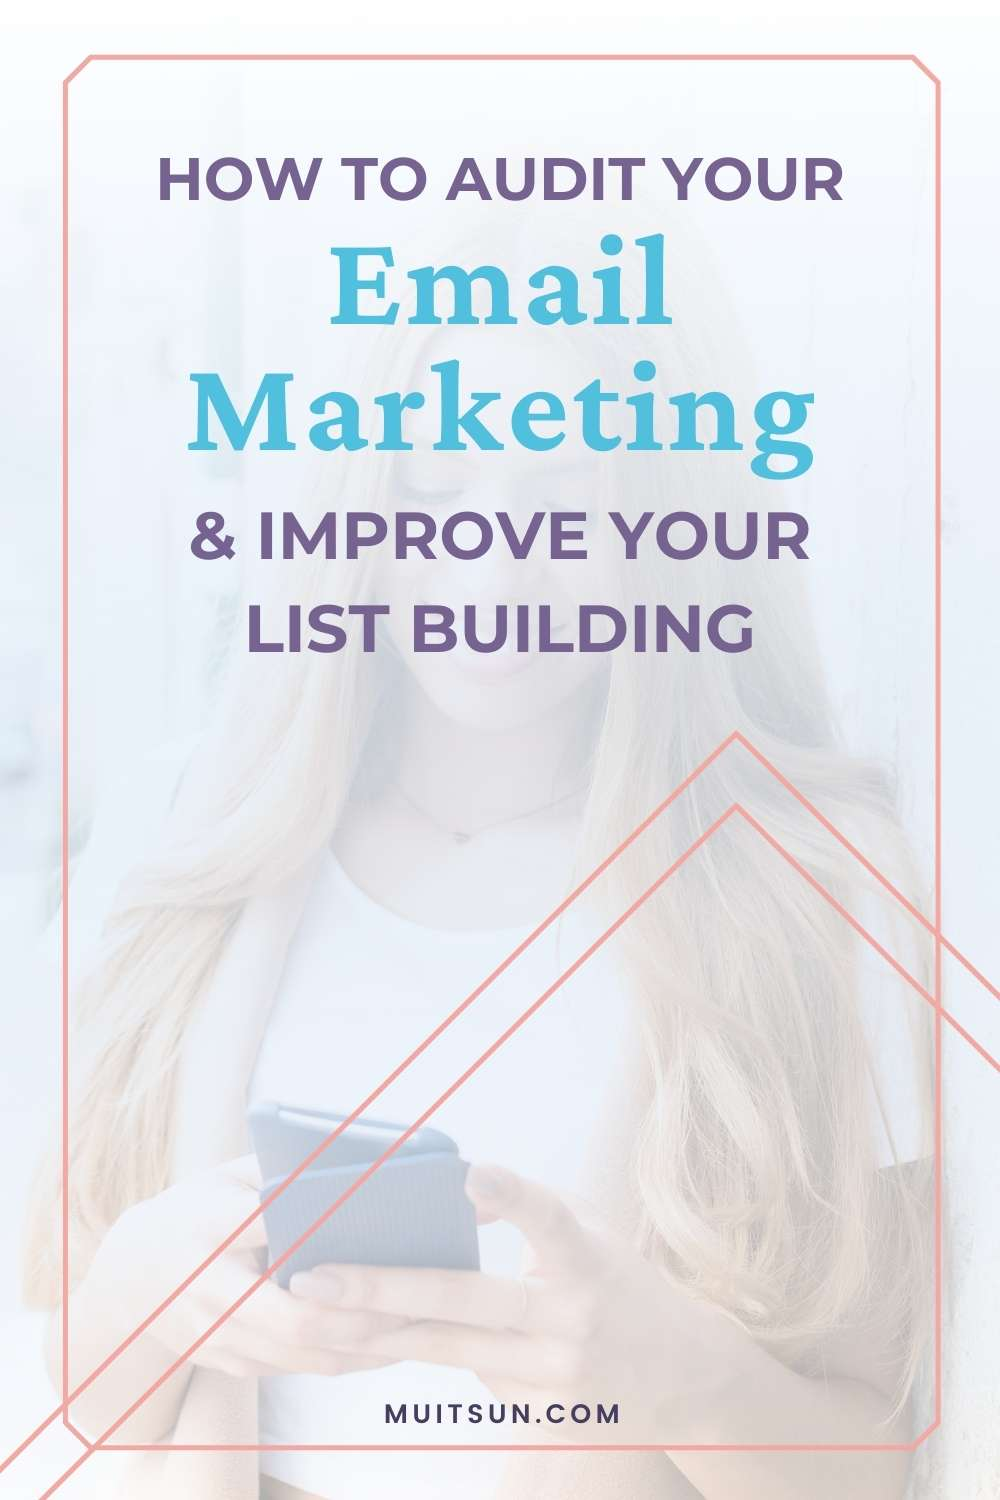 How to Audit Your Email Marketing & Improve Your List Building